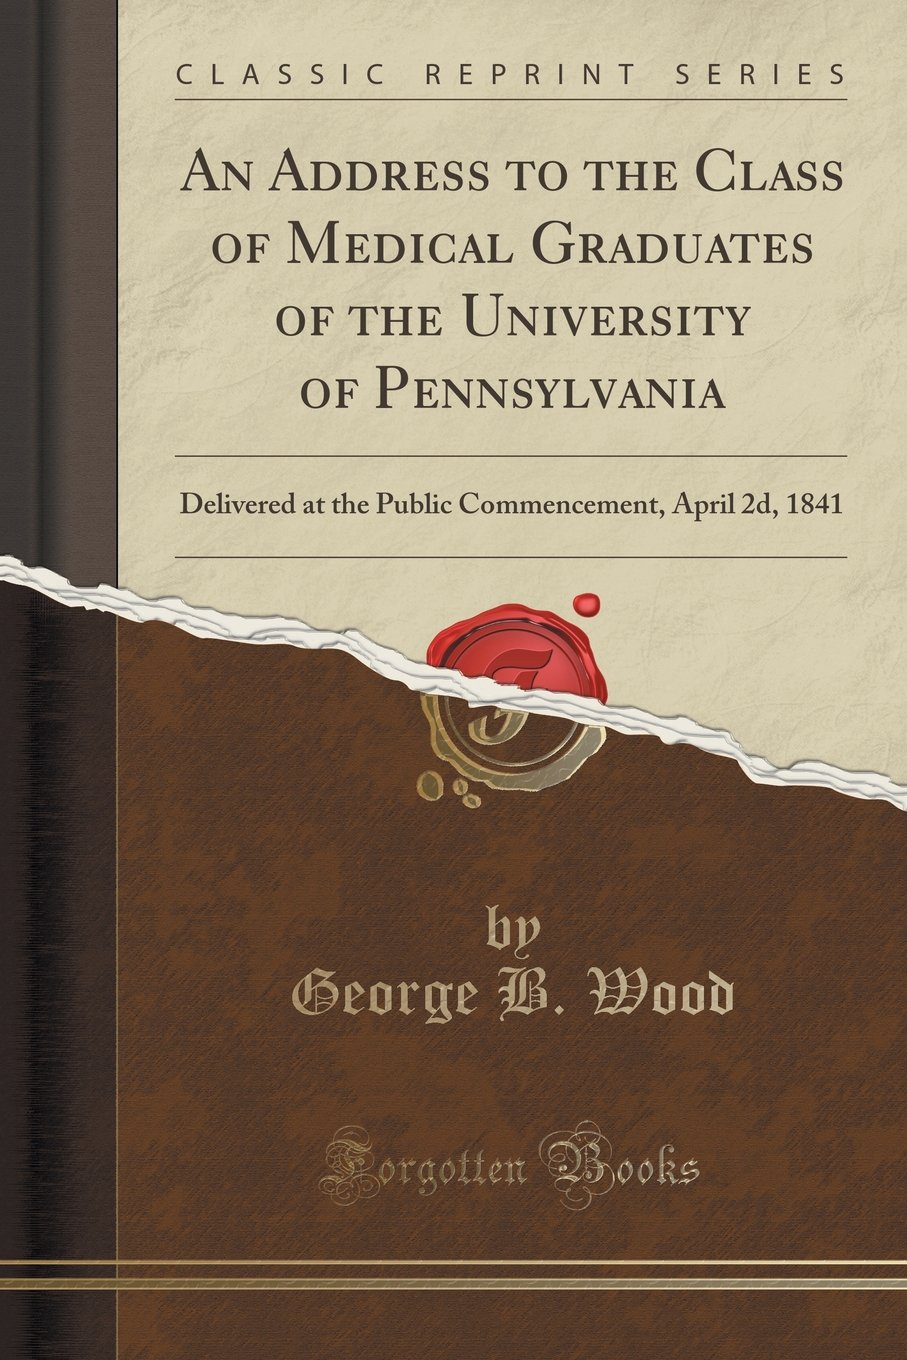 Download An Address to the Class of Medical Graduates of the University of Pennsylvania: Delivered at the Public Commencement, April 2d, 1841 (Classic Reprint) ebook